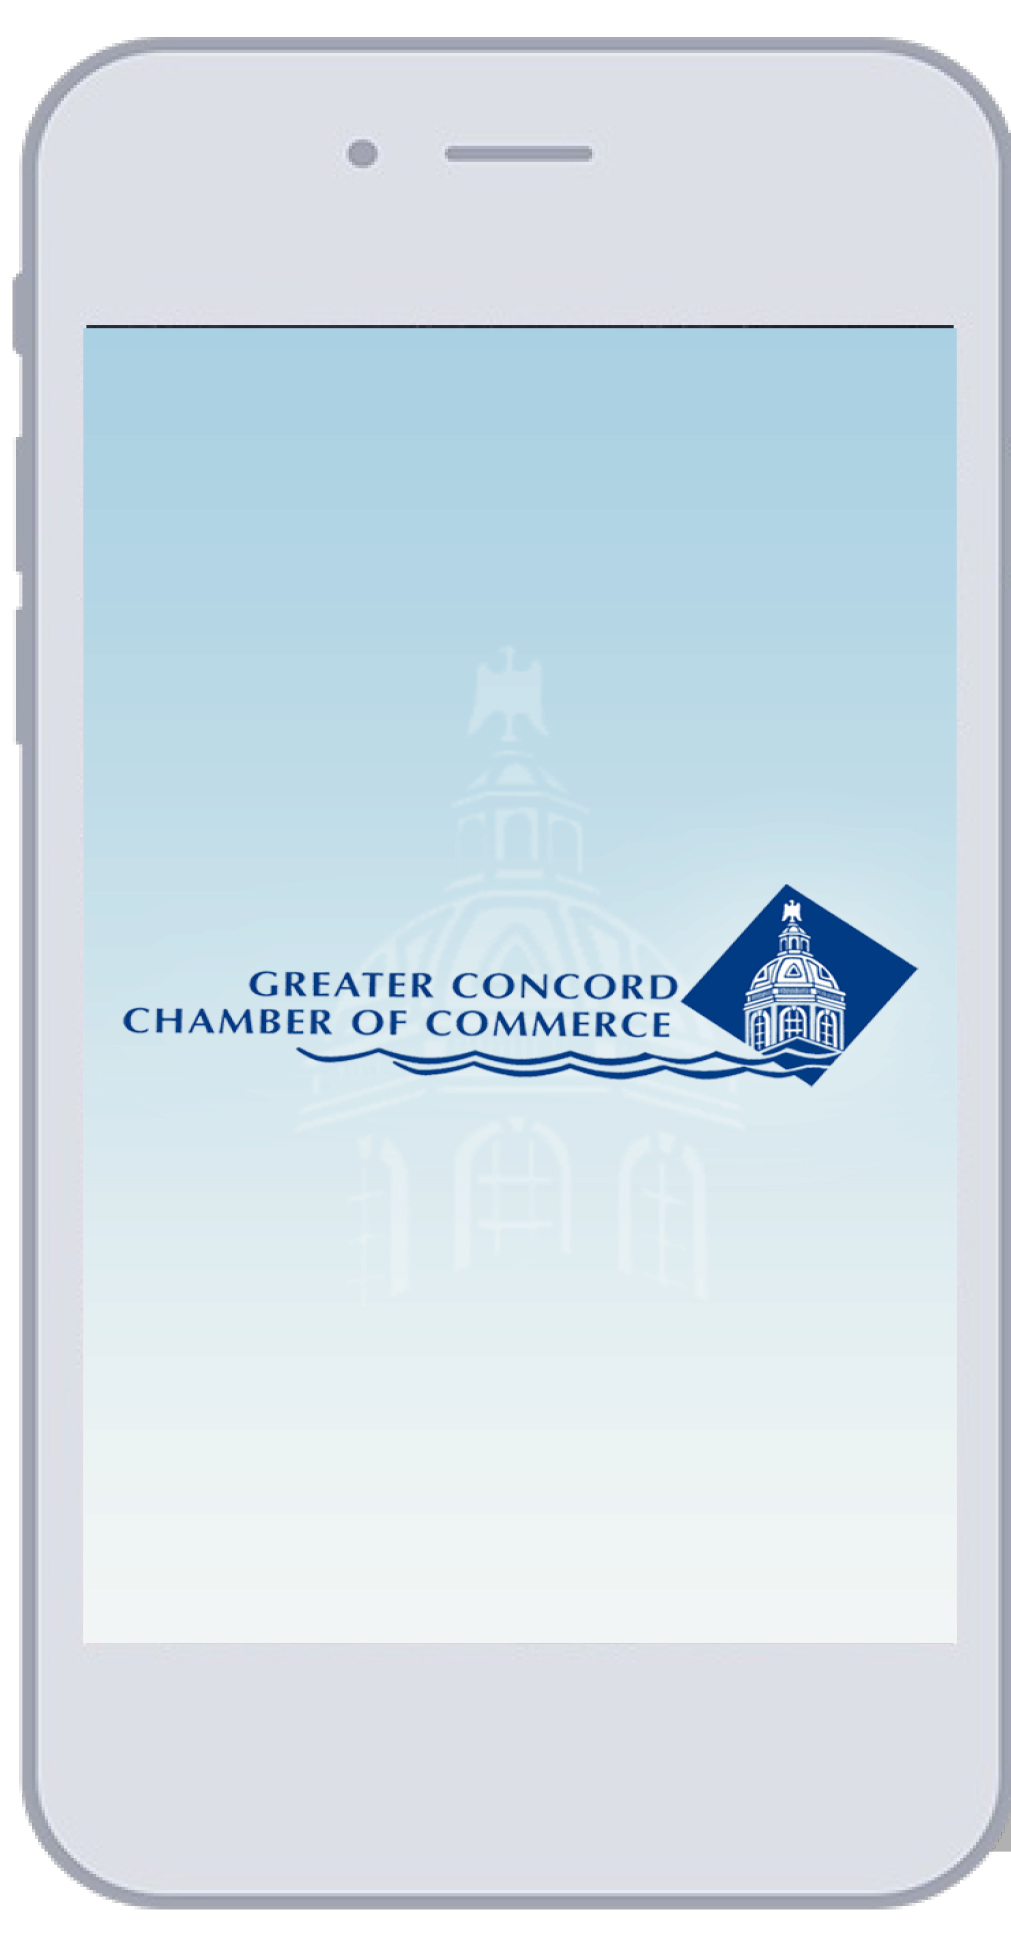 Concord NH Chamber of Commerce App